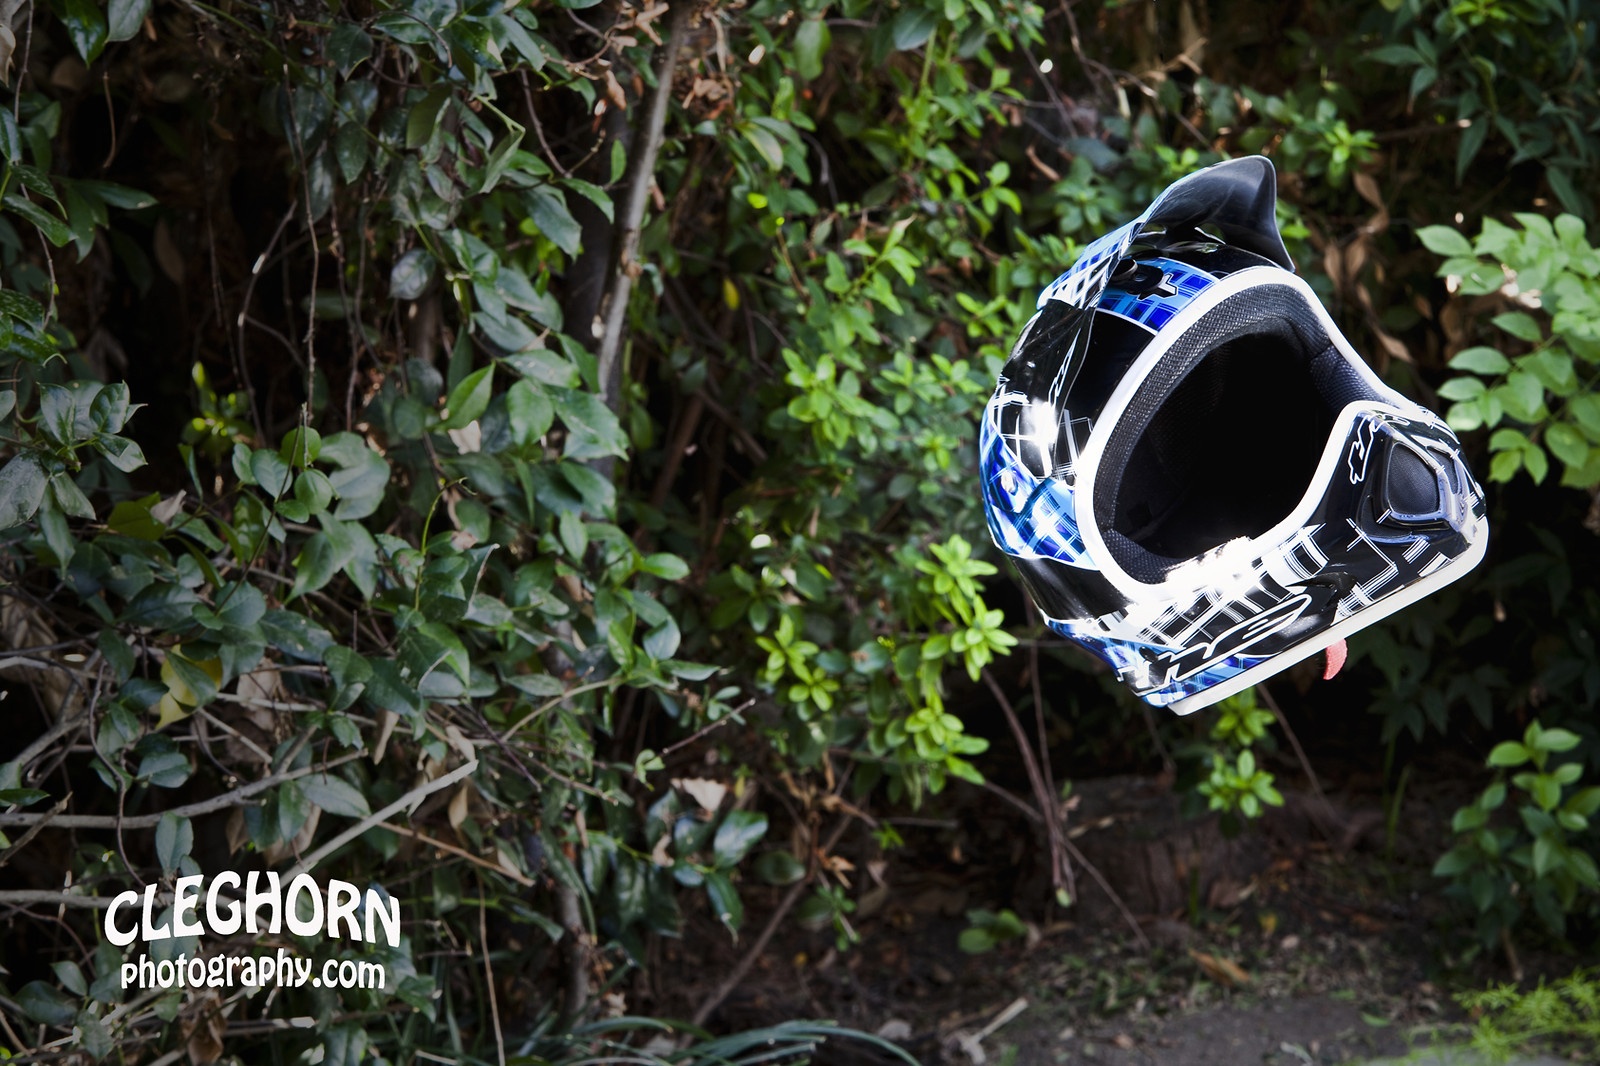 Floating - Cleghorn Photography - Mountain Biking Pictures - Vital MTB